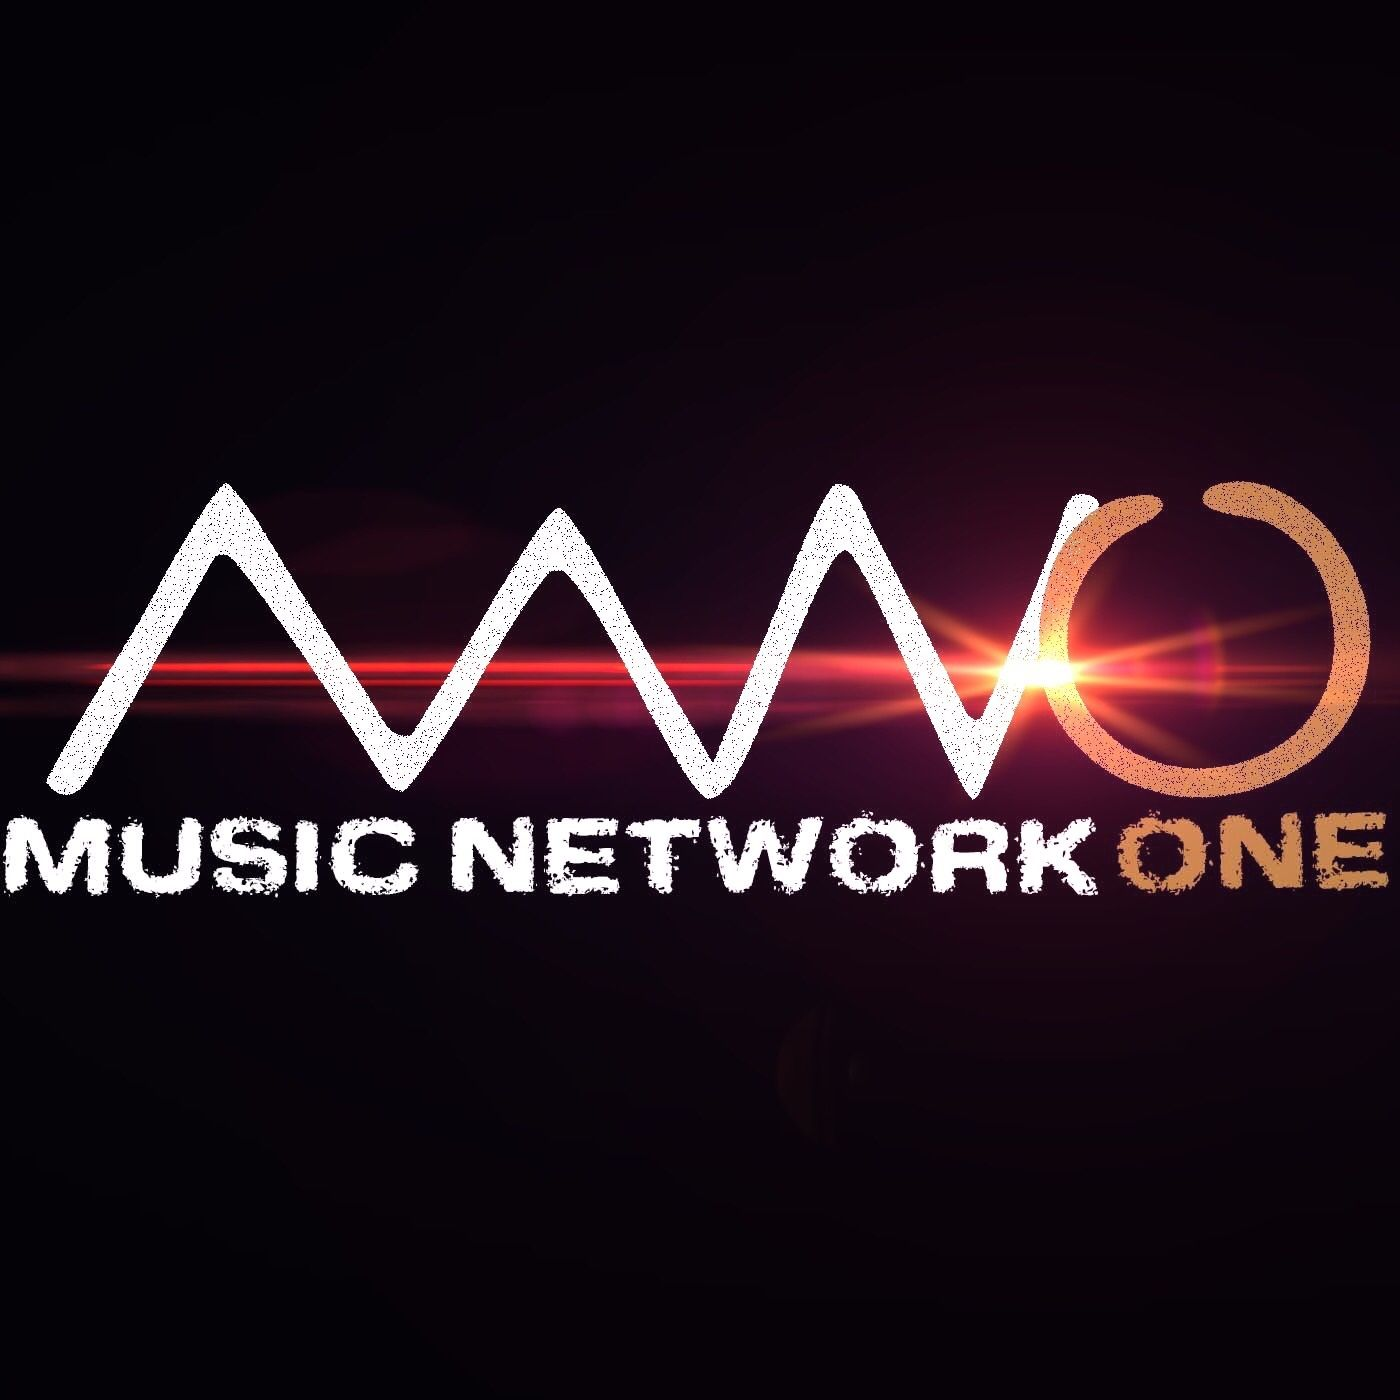 Music Network One